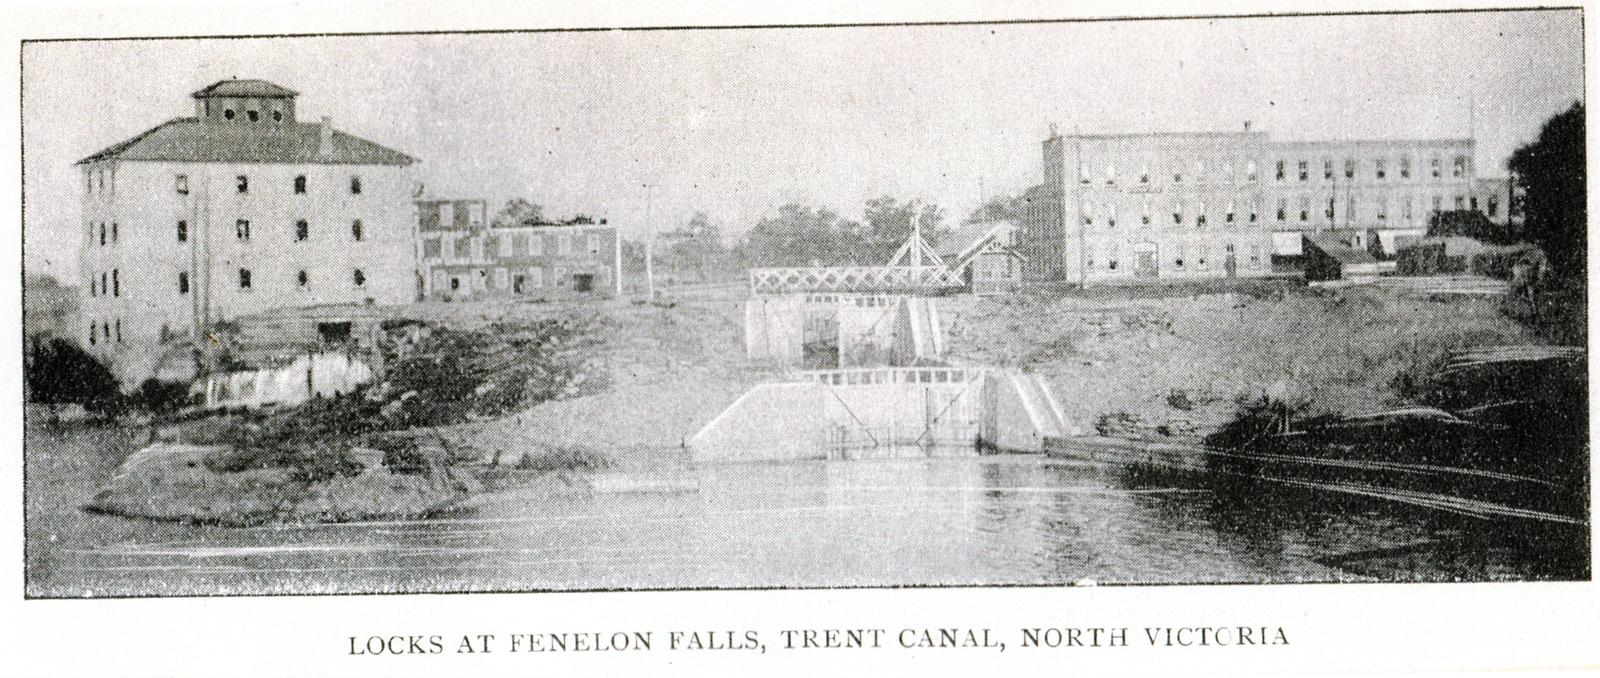 Trent Canal, North Victoria County, Ontario